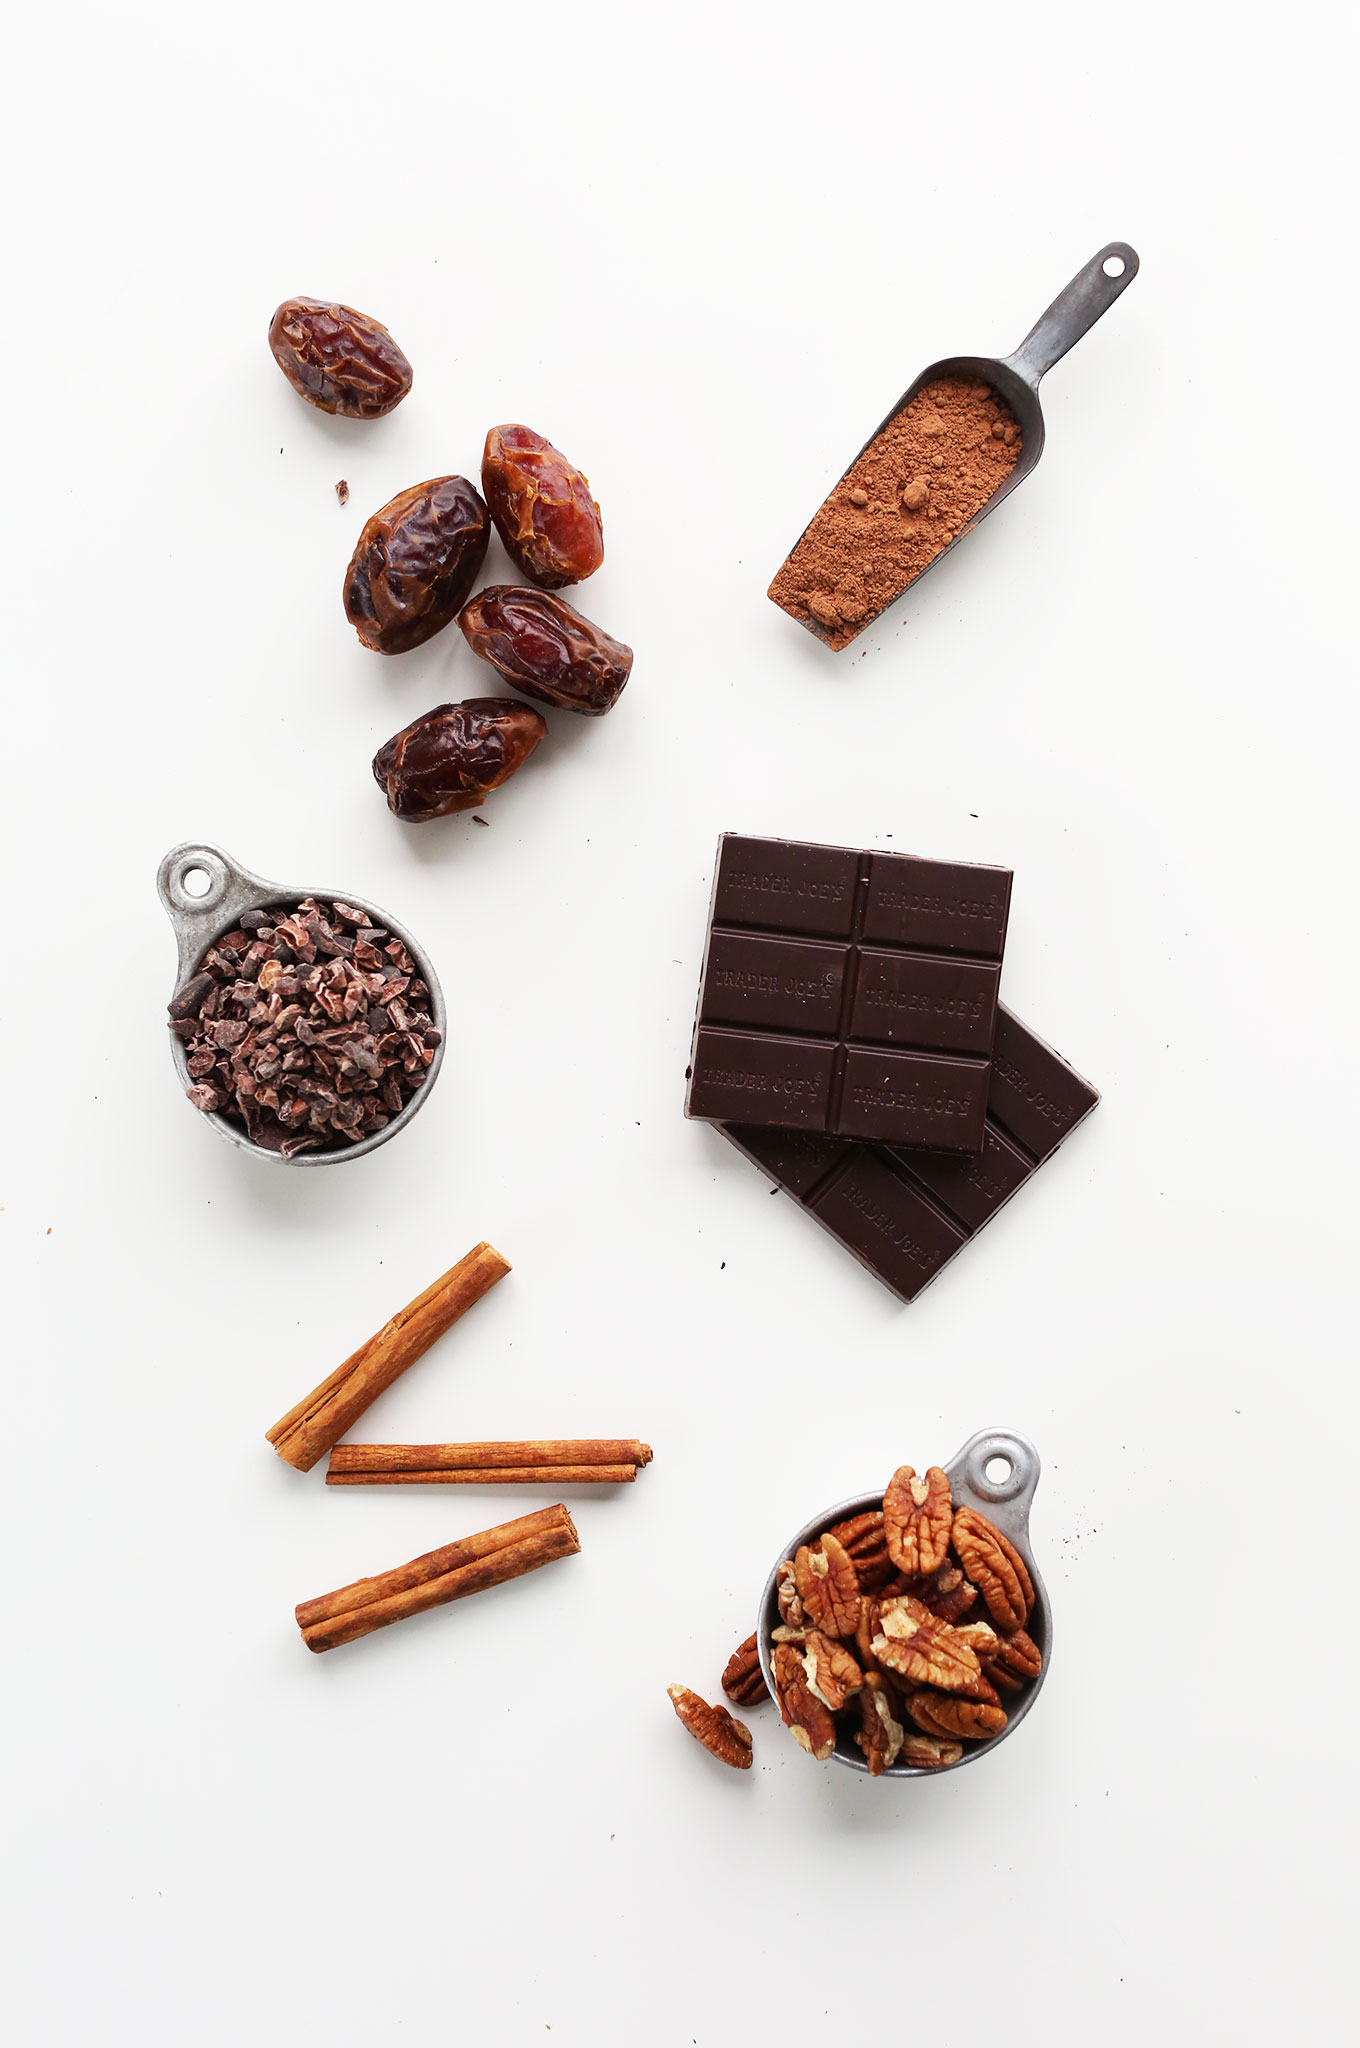 Cinnamon, pecans, dark chocolate, cocoa powder, dates, and cacao nibs